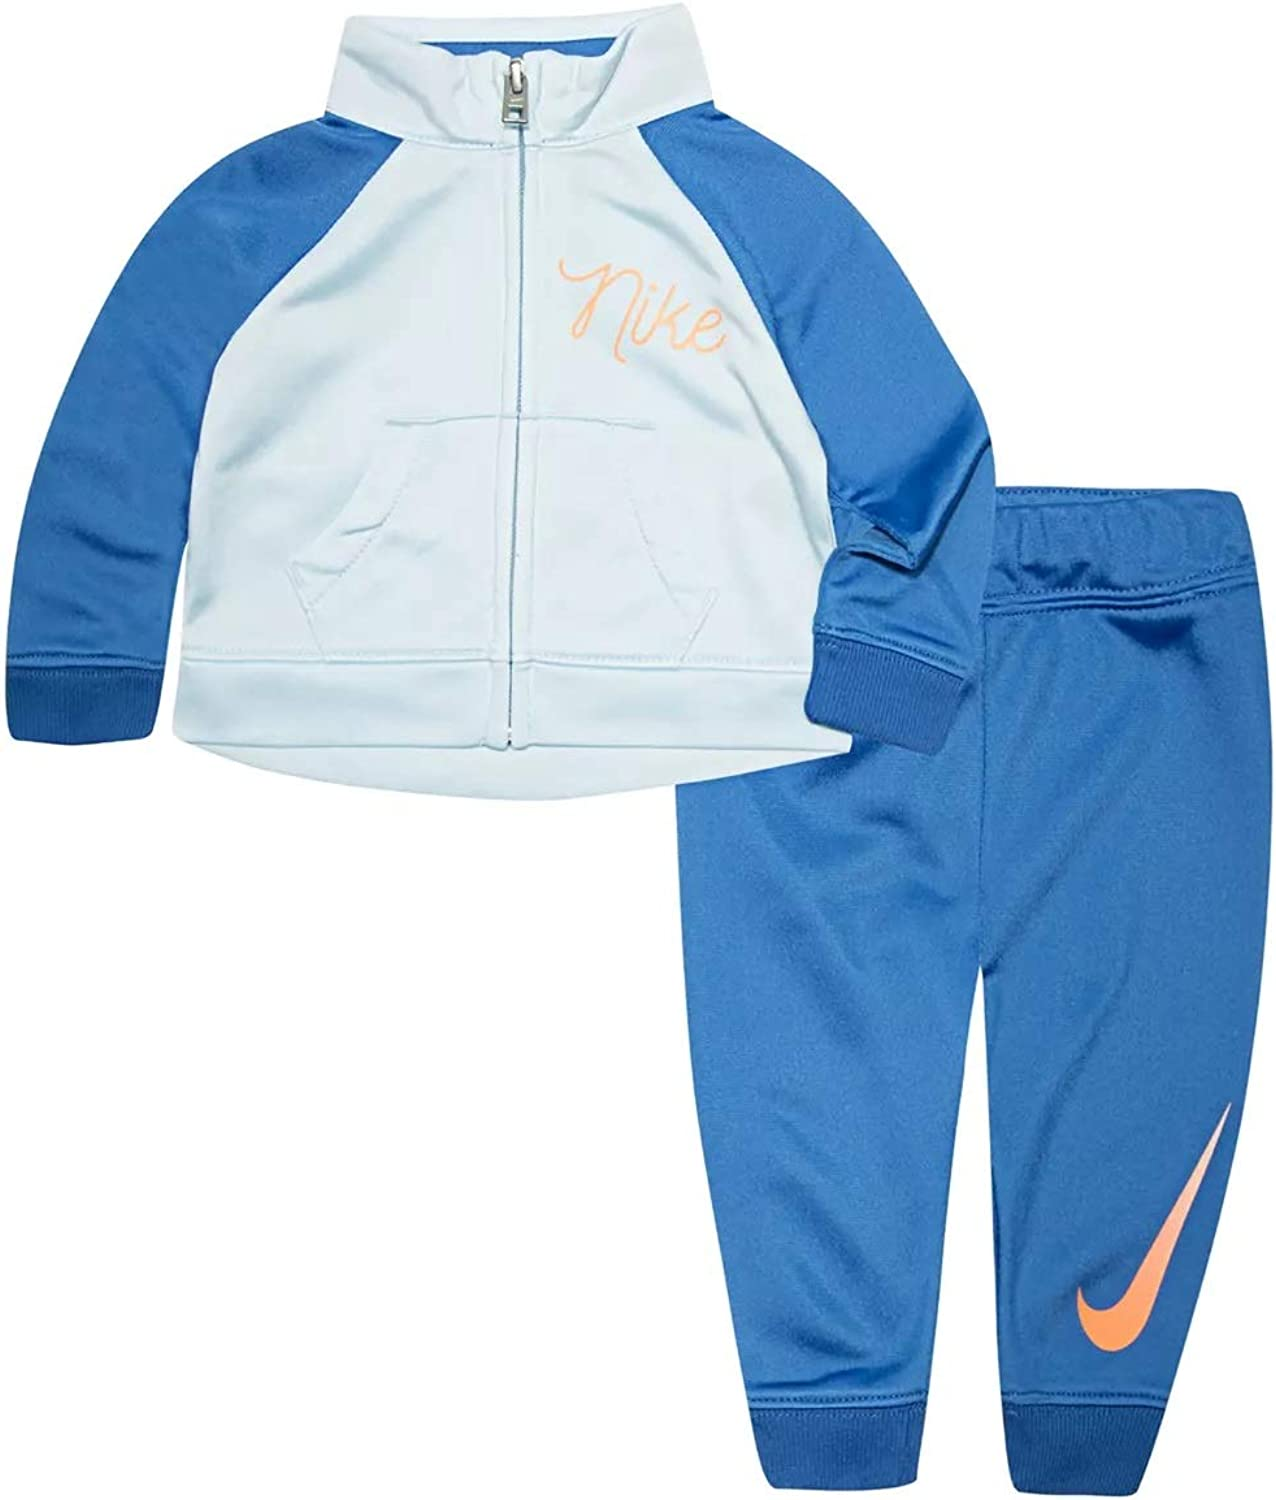 NIKE Baby 2 Piece Top and Pants Set